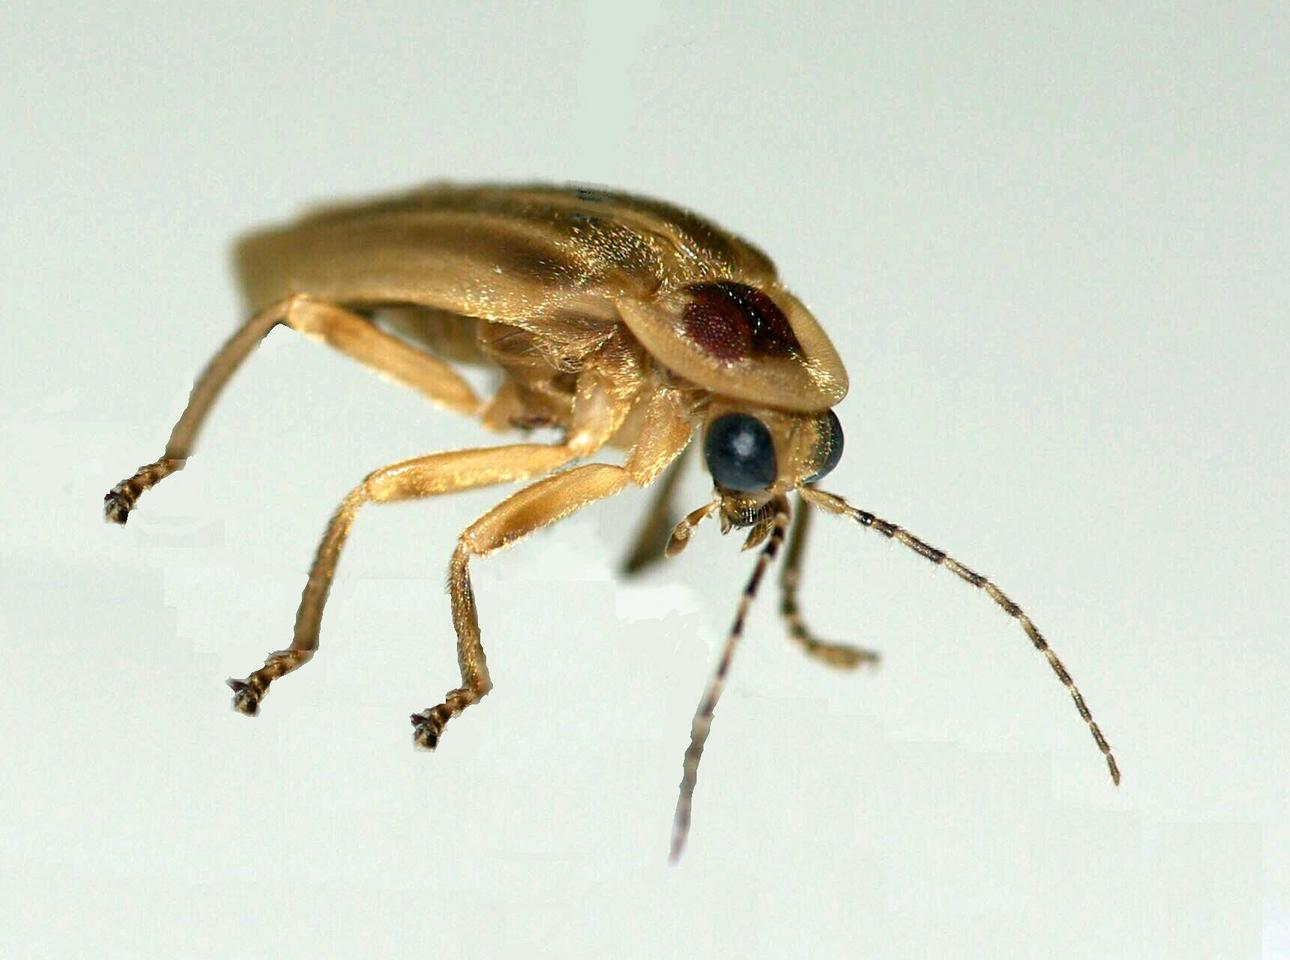 A Photuris firefly, which was the focus of the research (Photo: Optics Express)